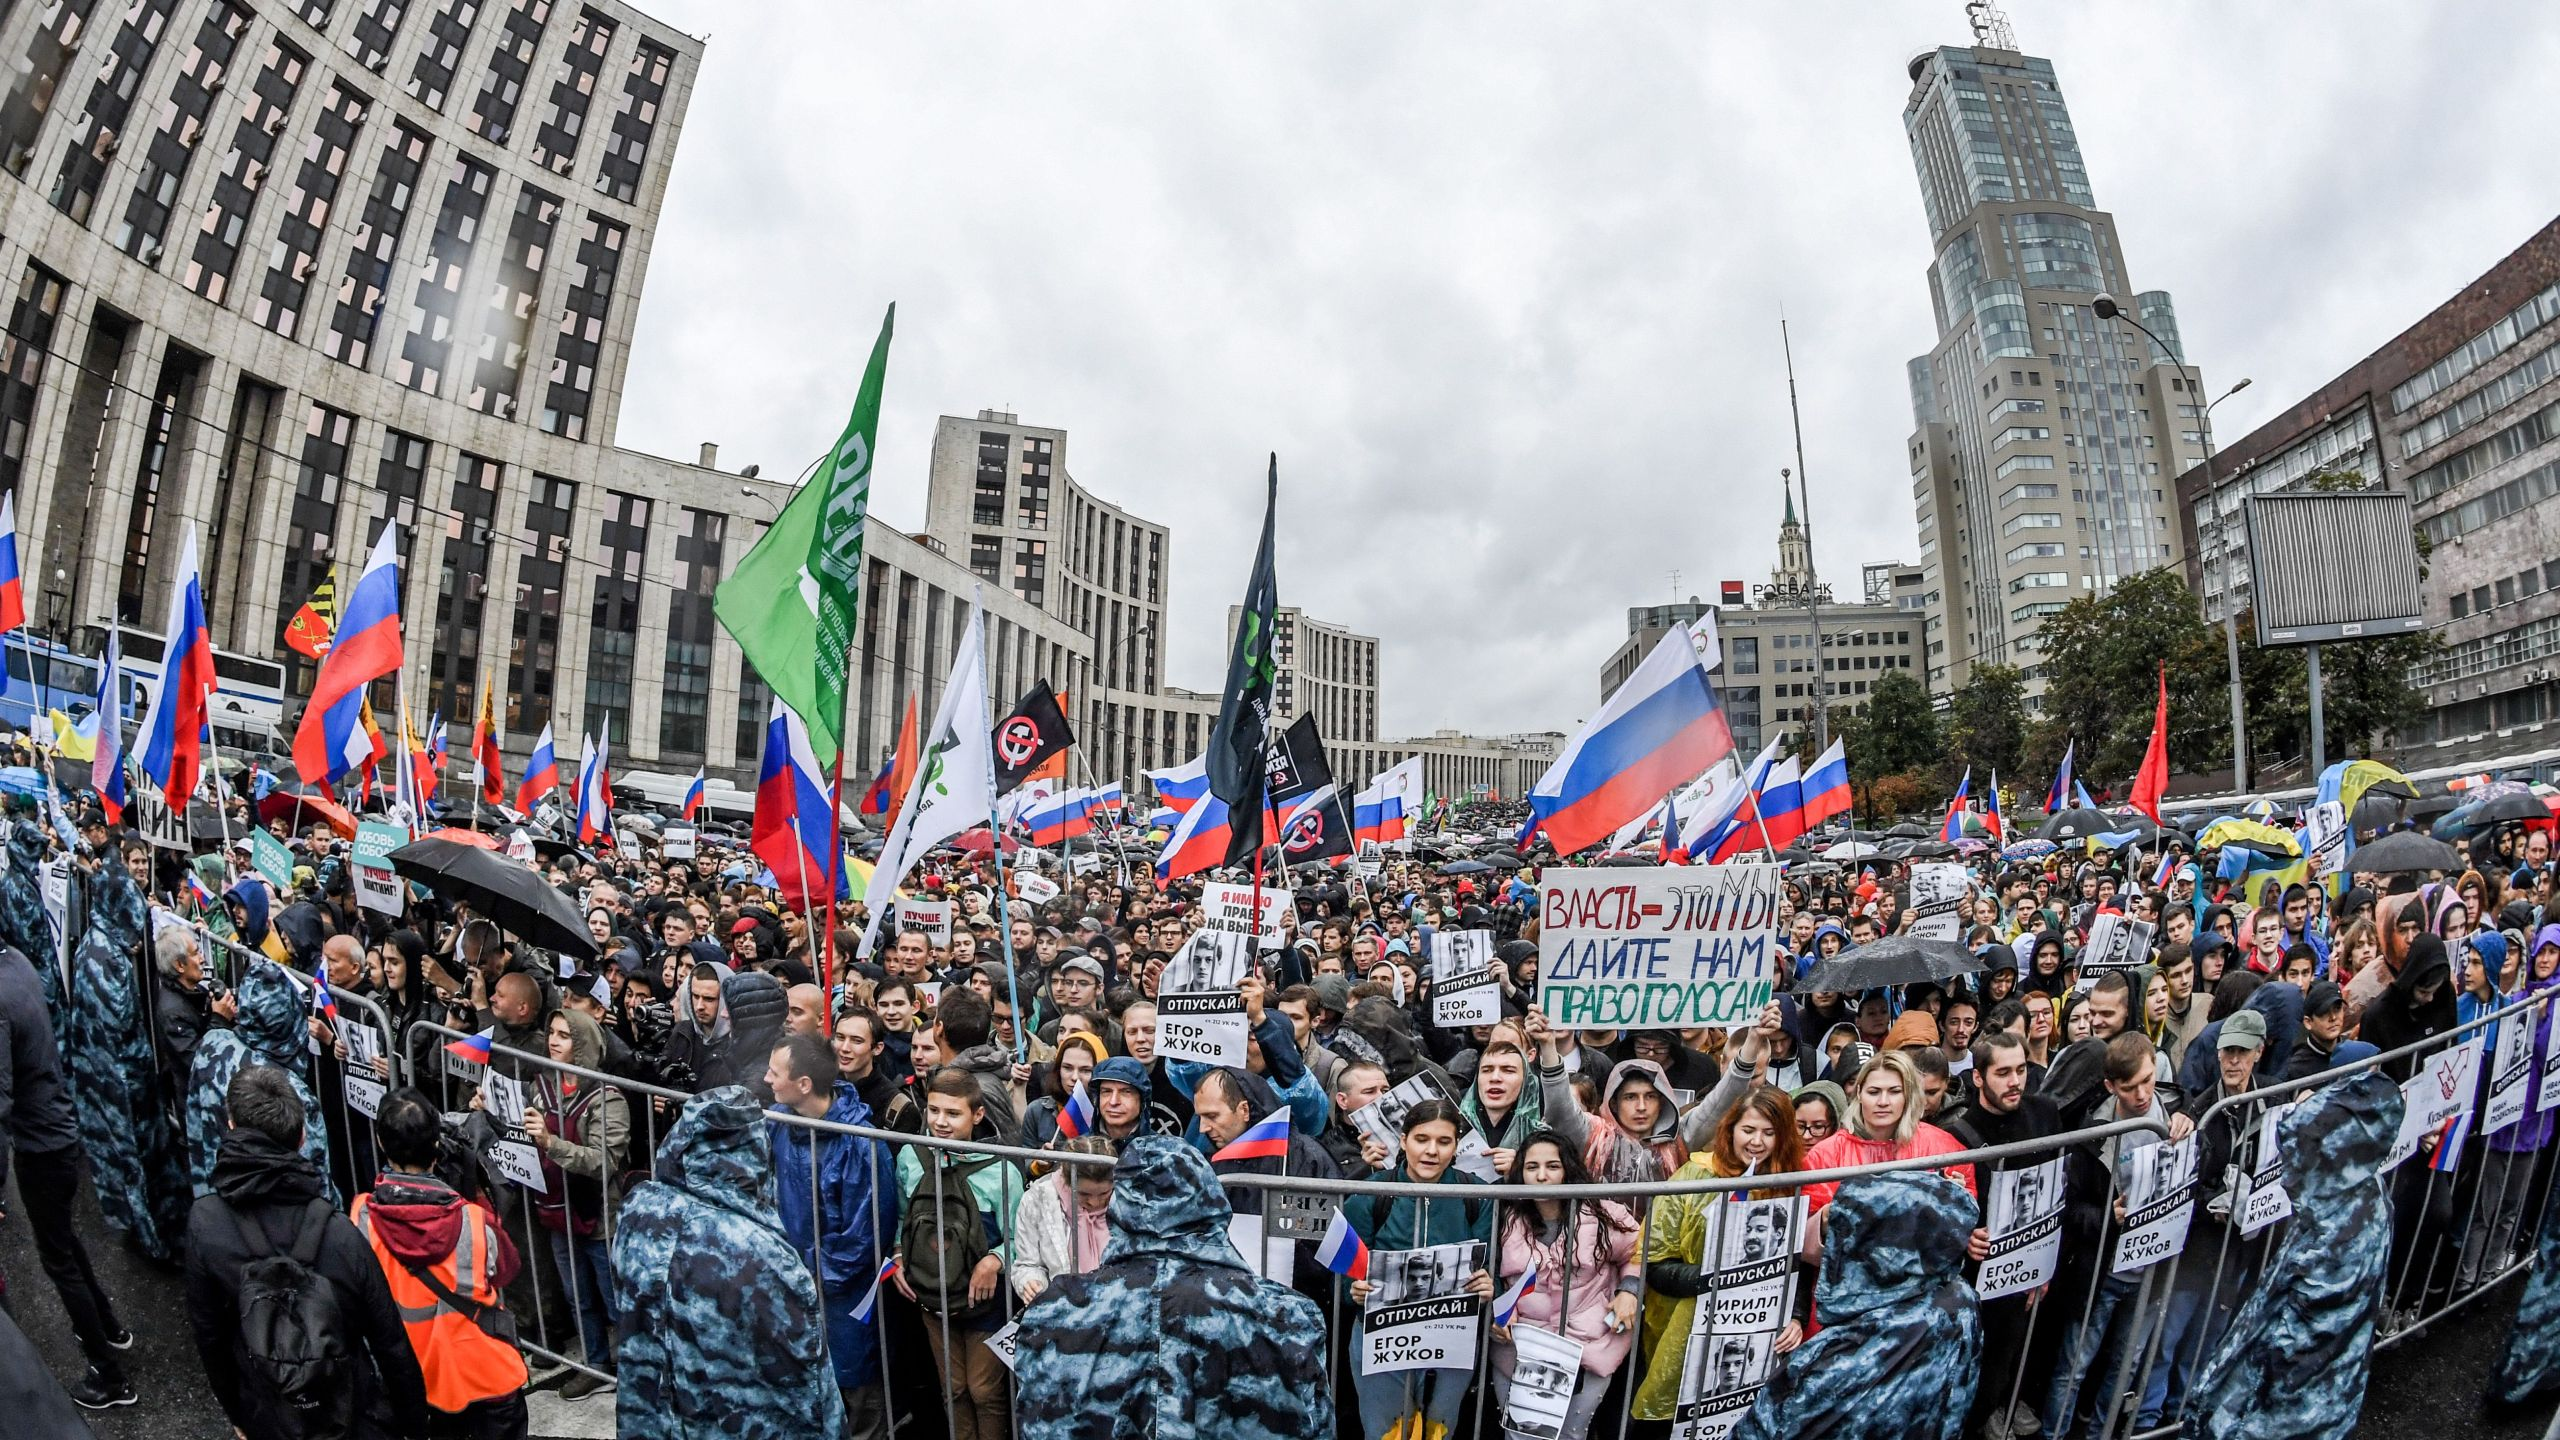 Protesters attend a rally in central Moscow on August 10, 2019 after mass police detentions. (Credit: YURI KADOBNOV/AFP/Getty Images)